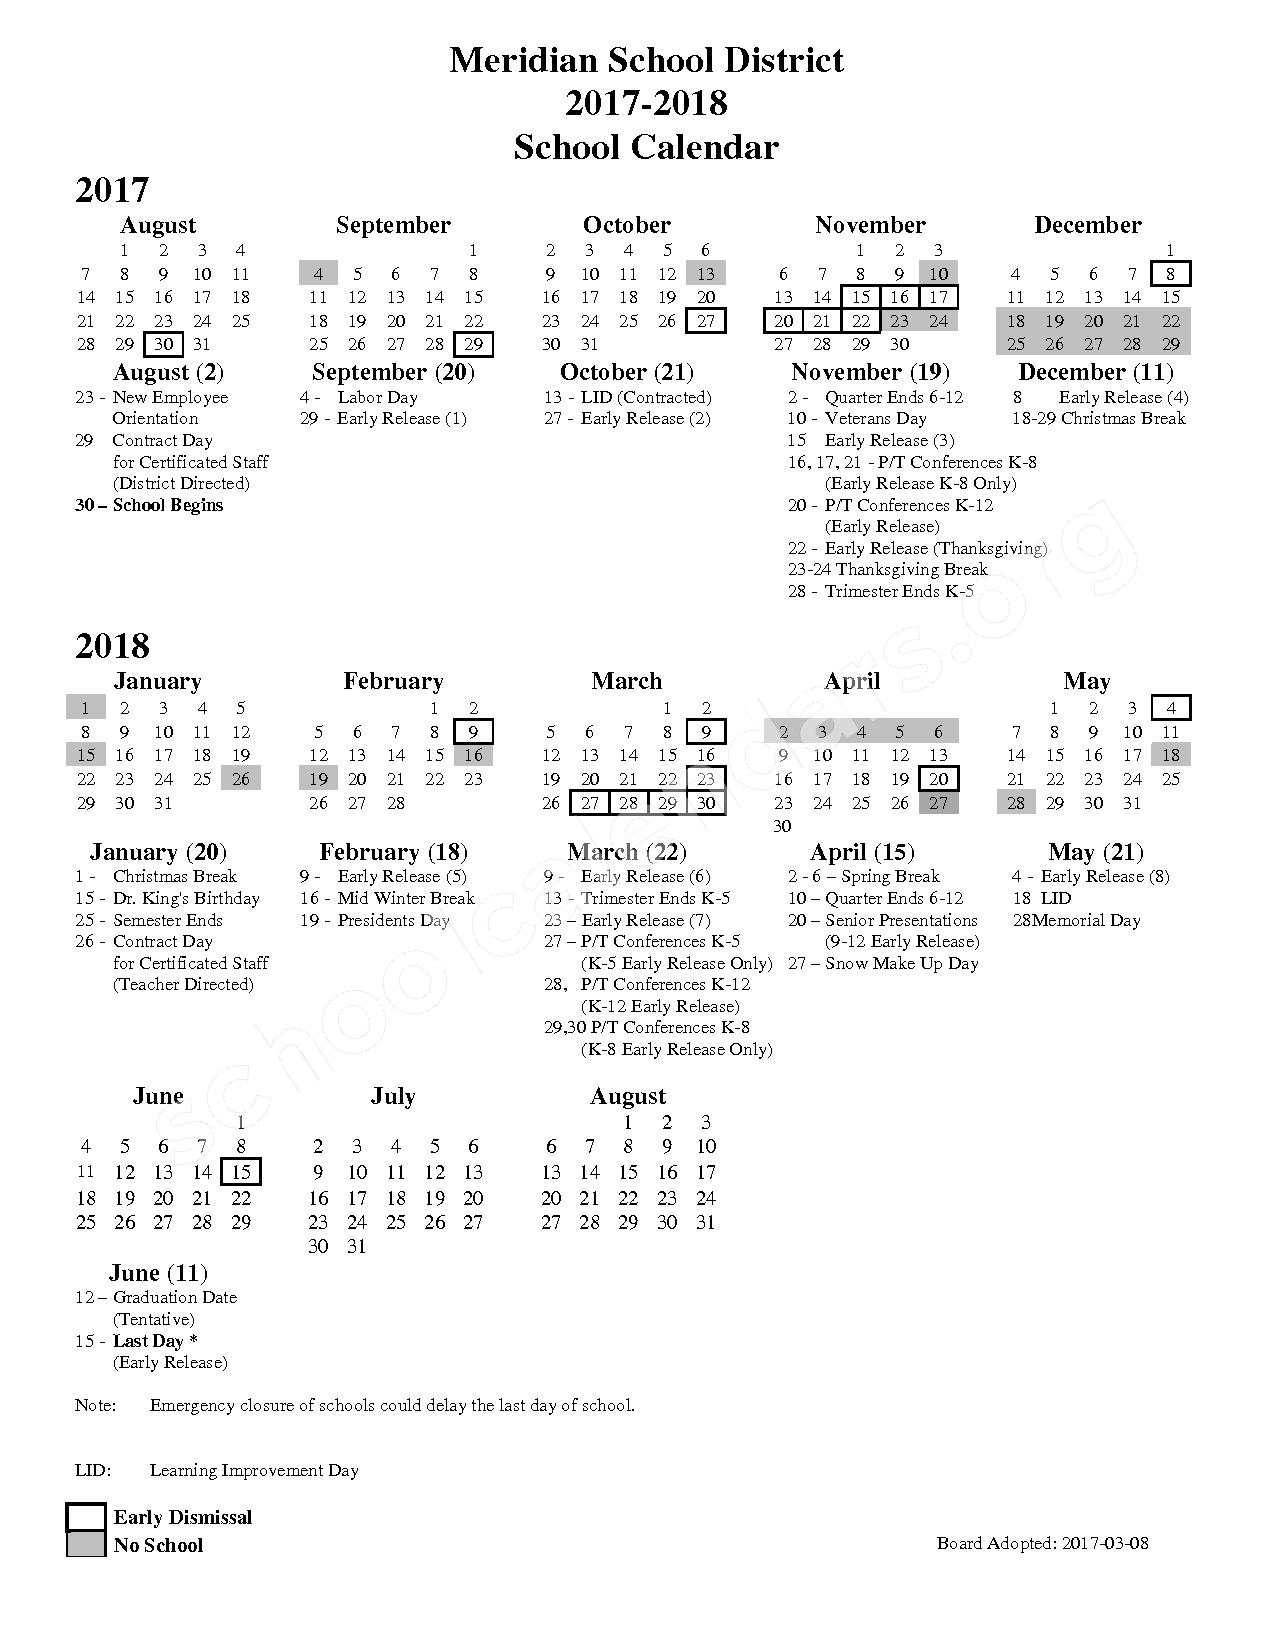 2017 - 2018 School Calendar – Meridian School District – page 1